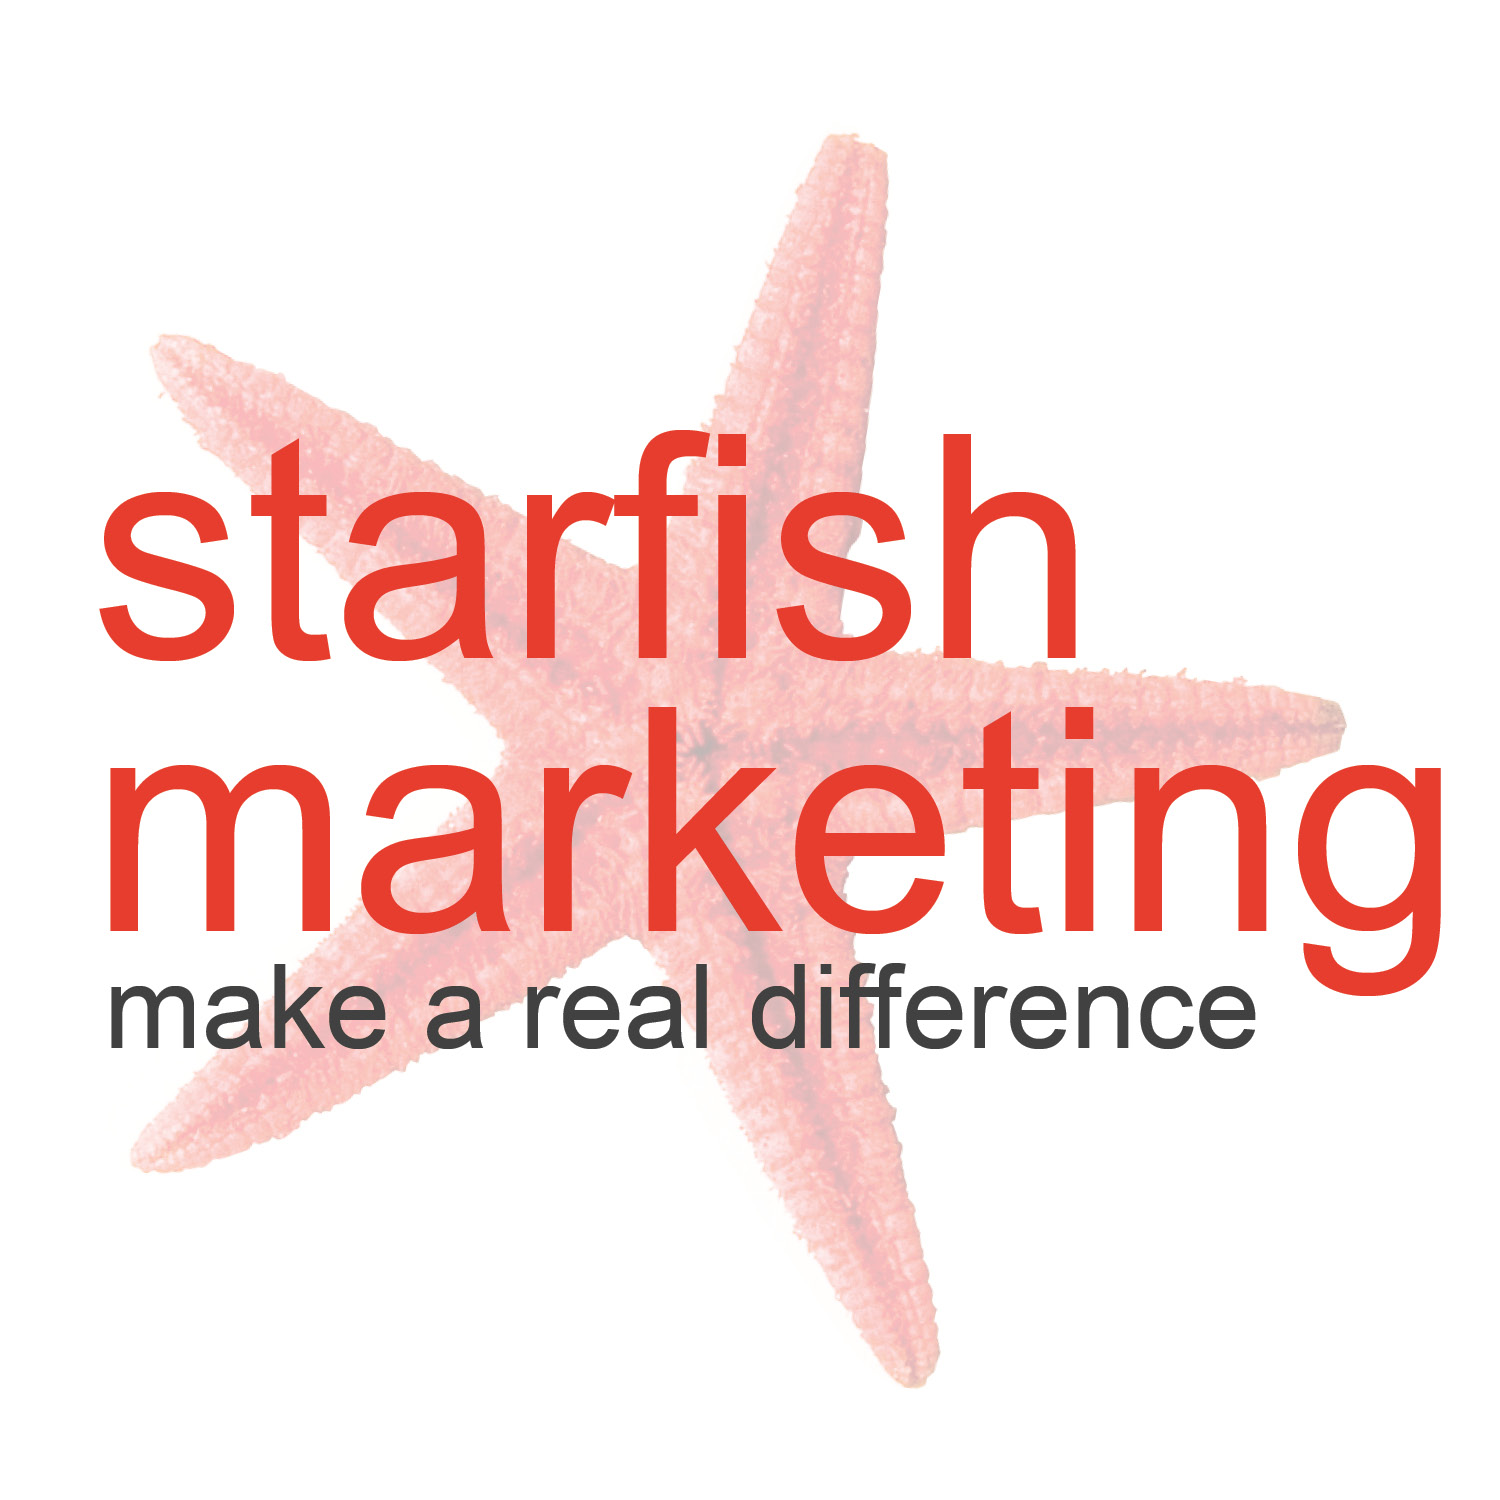 starfish marketing